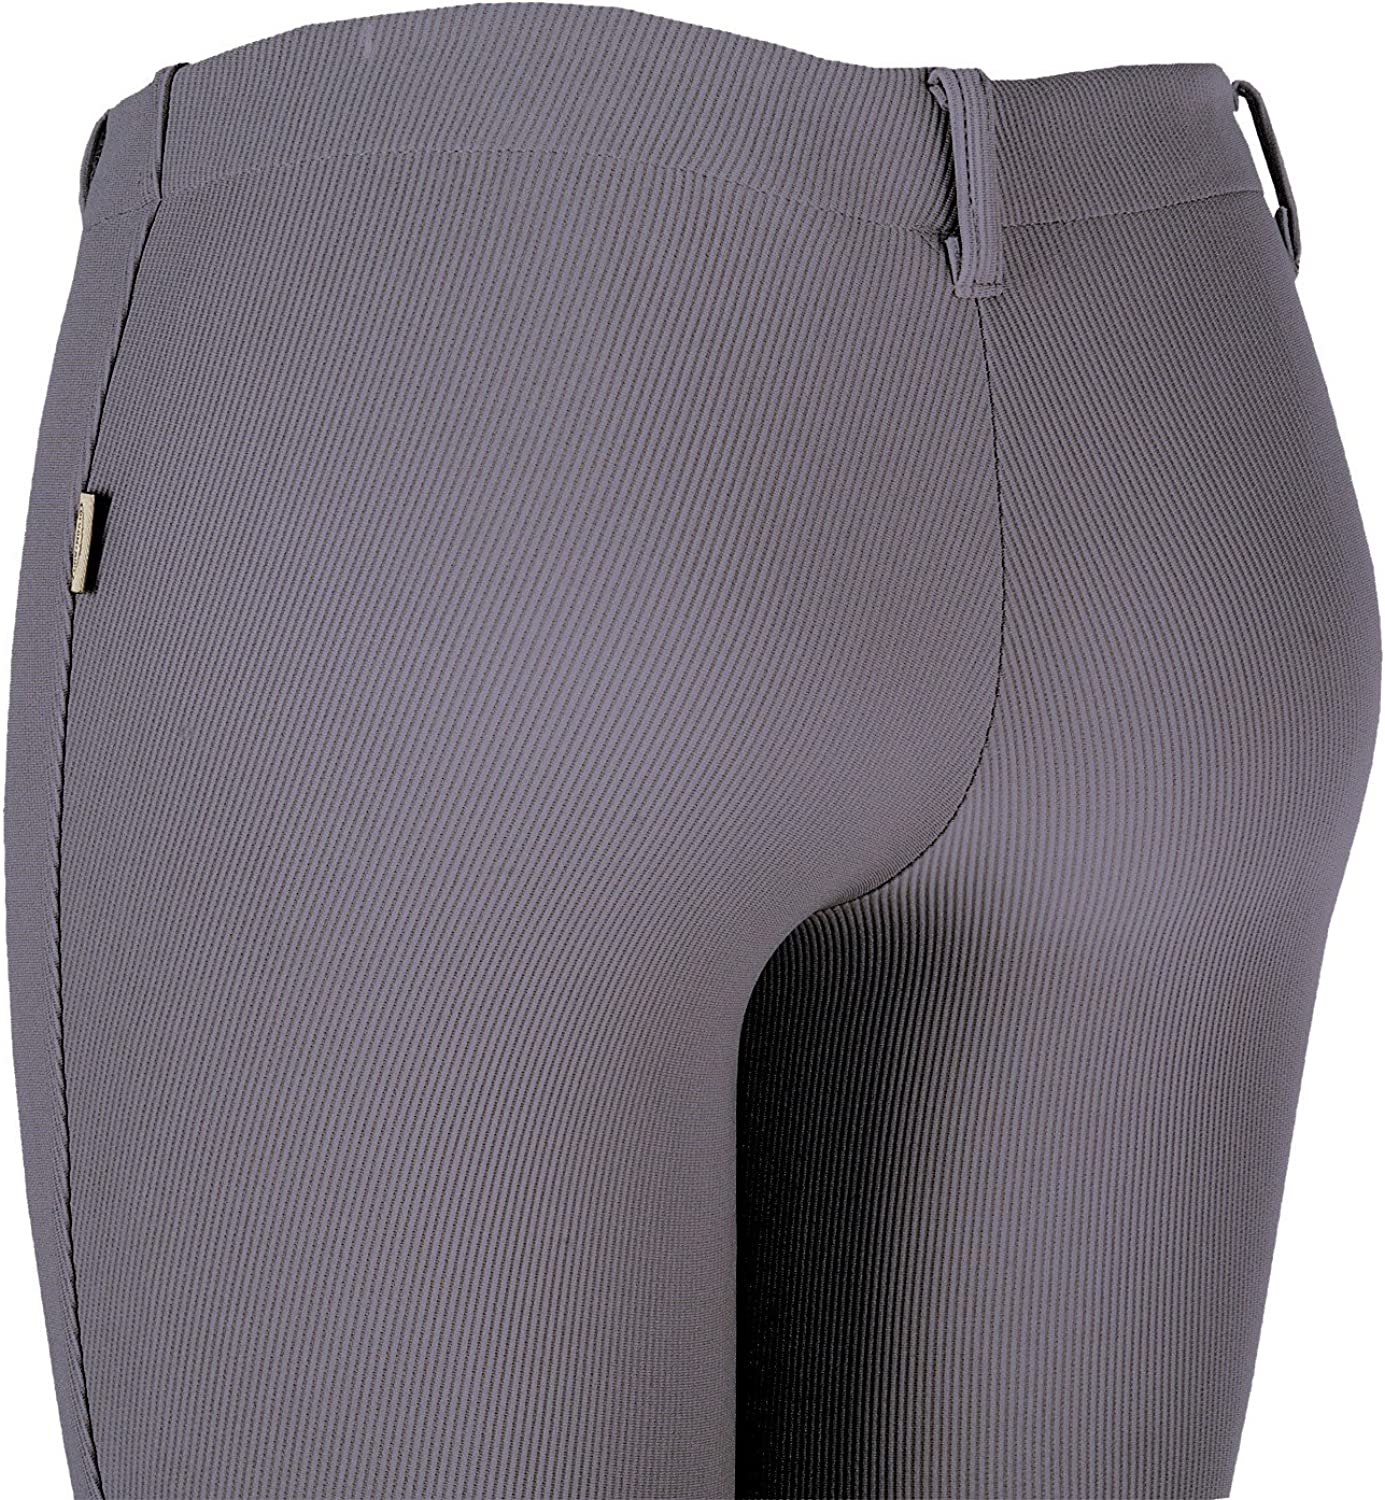 Devon-Aire Womens All Pro Classic Breech